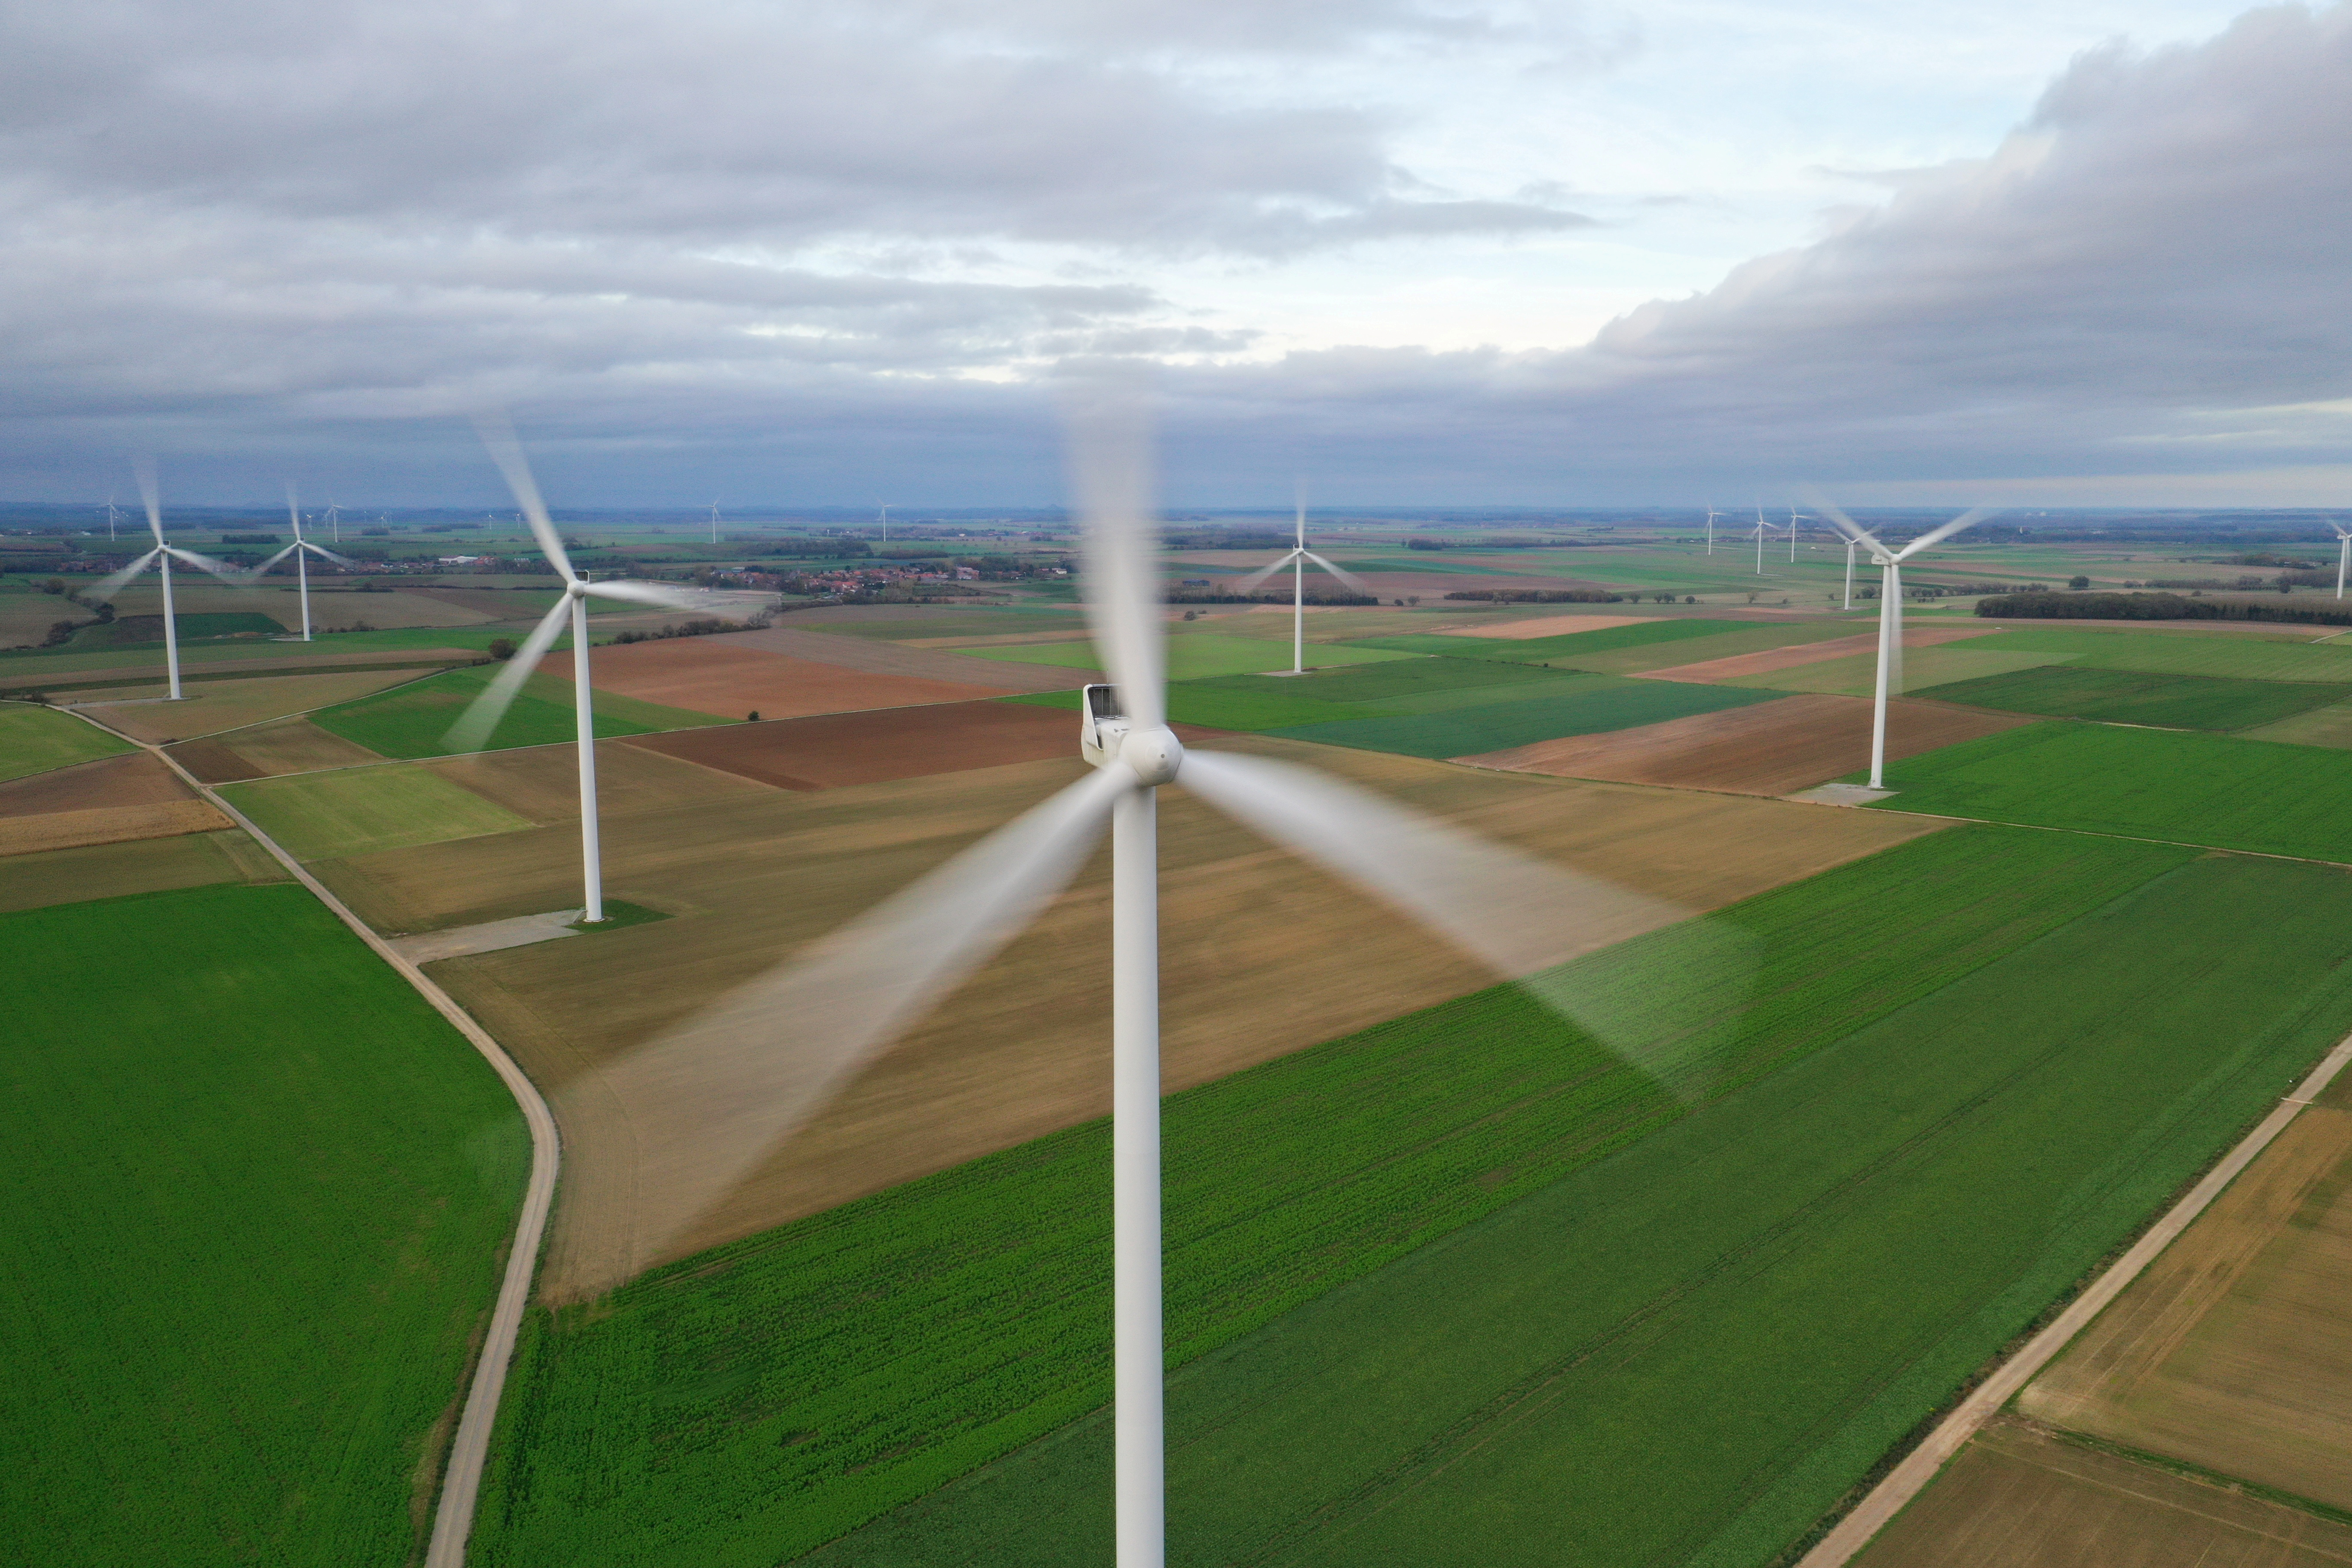 An aerial view shows power-generating windmill turbines in a wind farm in Morchies, France, November 8, 2020. Picture taken with a drone REUTERS/Pascal Rossignol/File Photo